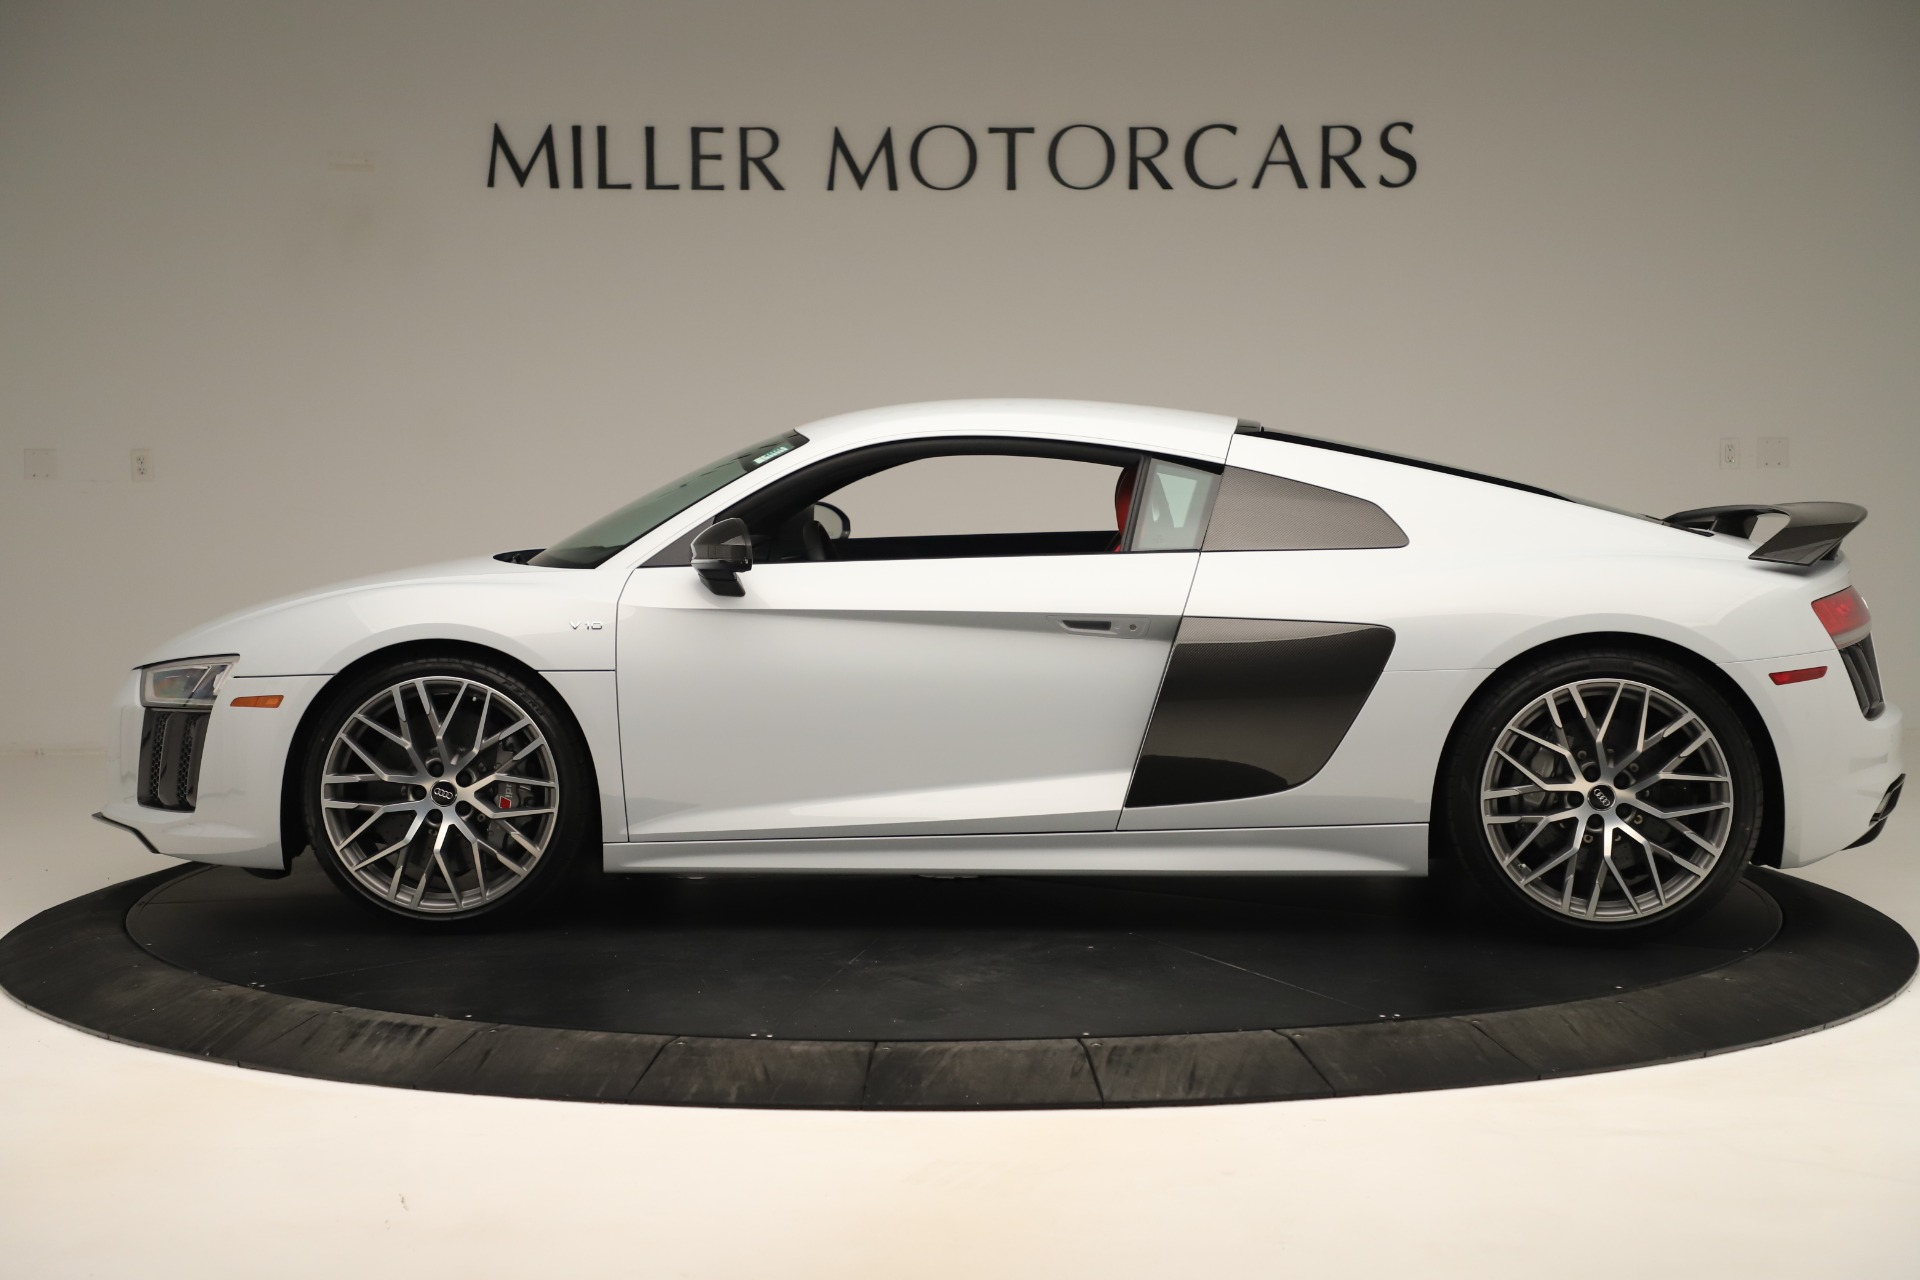 Used 2018 Audi R8 5.2 quattro V10 Plus For Sale In Westport, CT 3360_p3